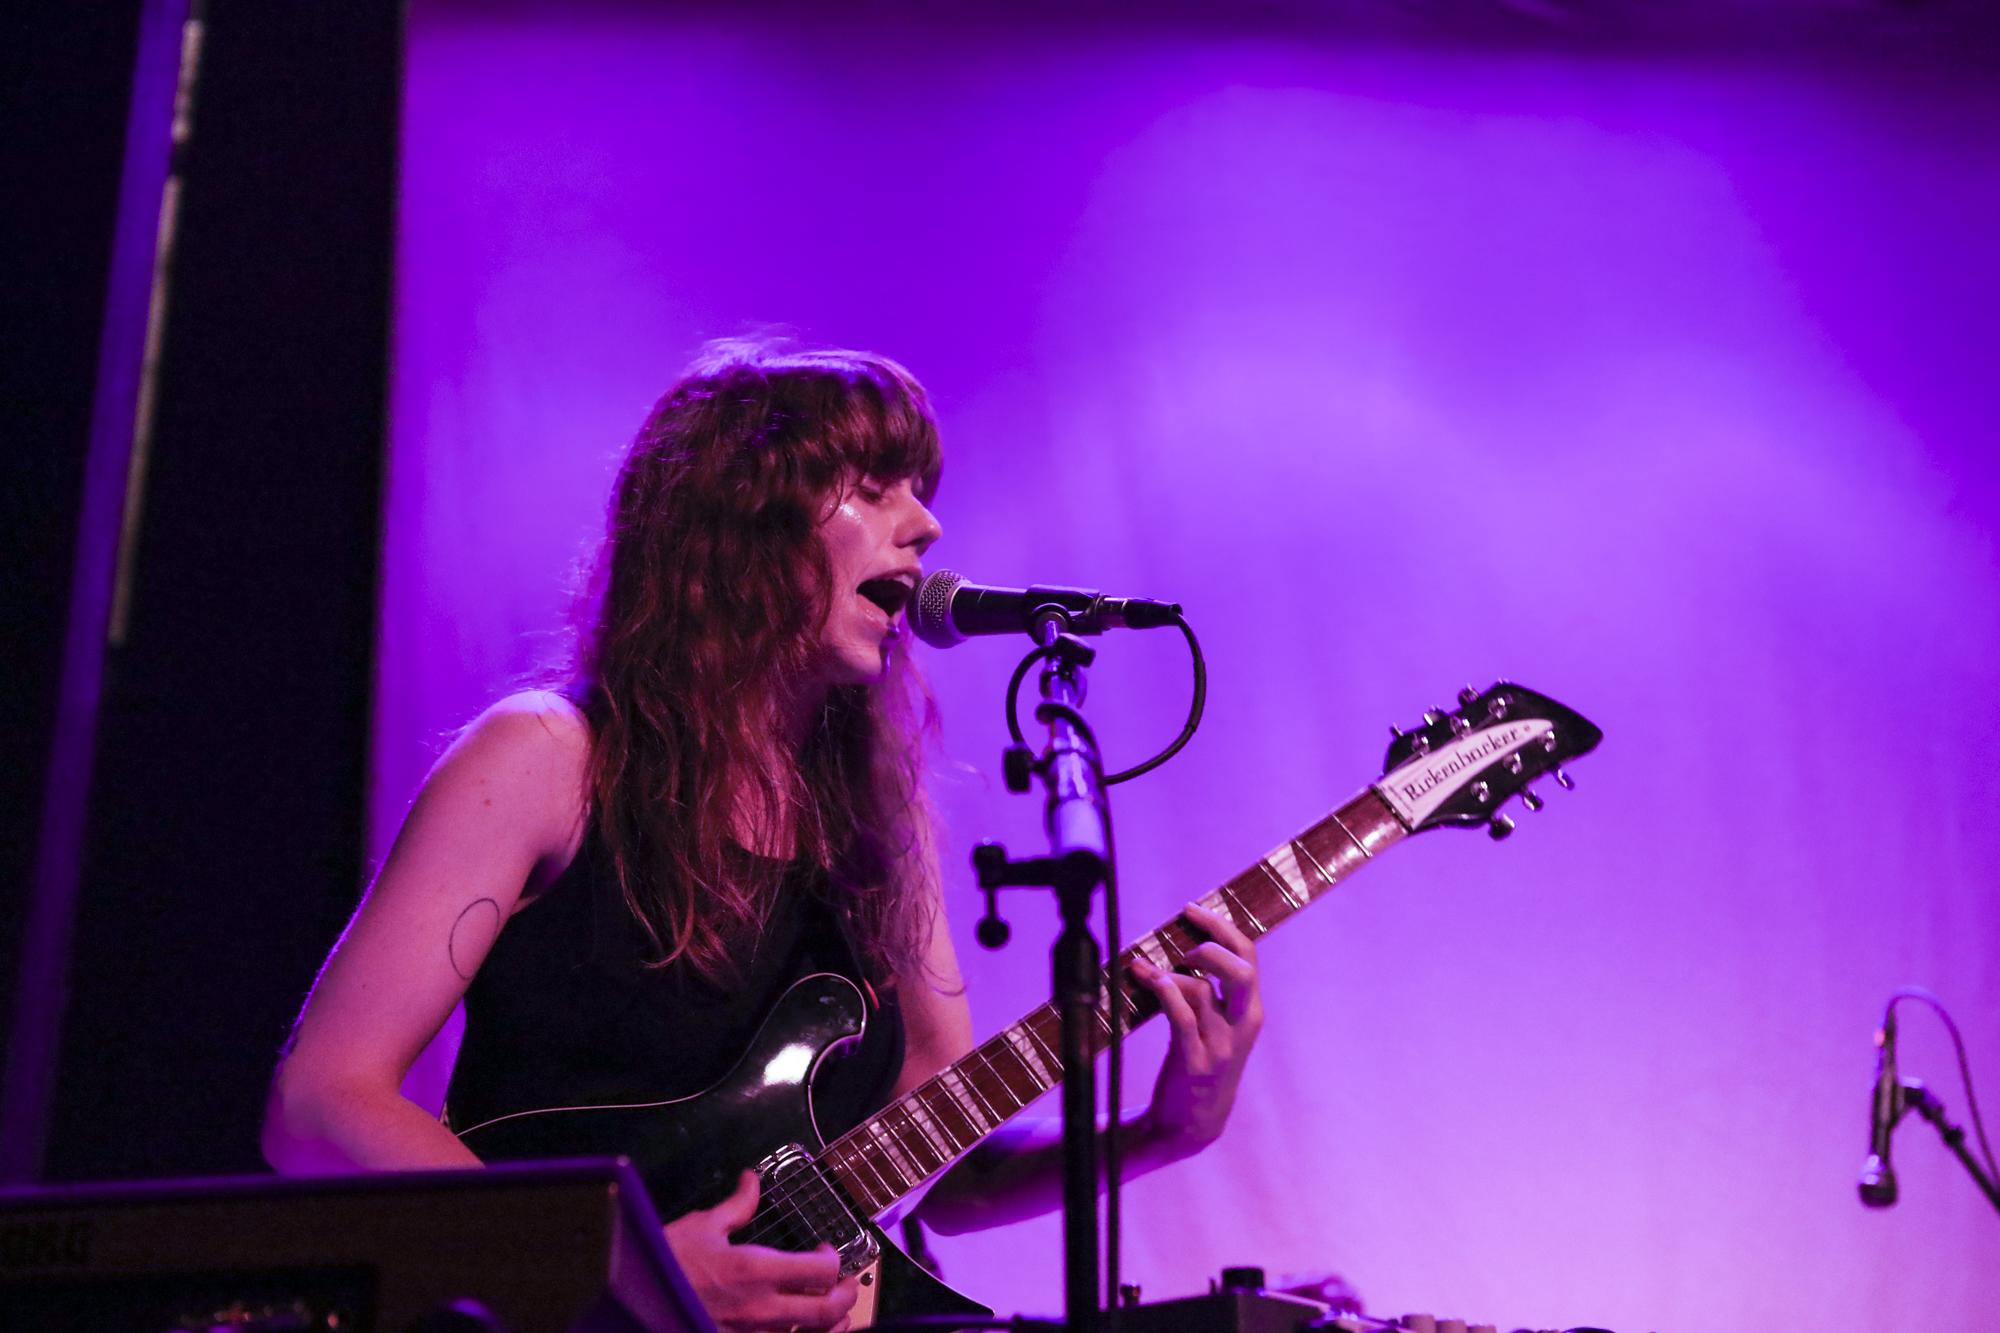 Katie Von Schleicher plays during Northside Festival at Rough Trade in Williamsburg, Brooklyn, New York on June 8, 2018. (© Michael Katzif - Do not use or republish without prior consent.)